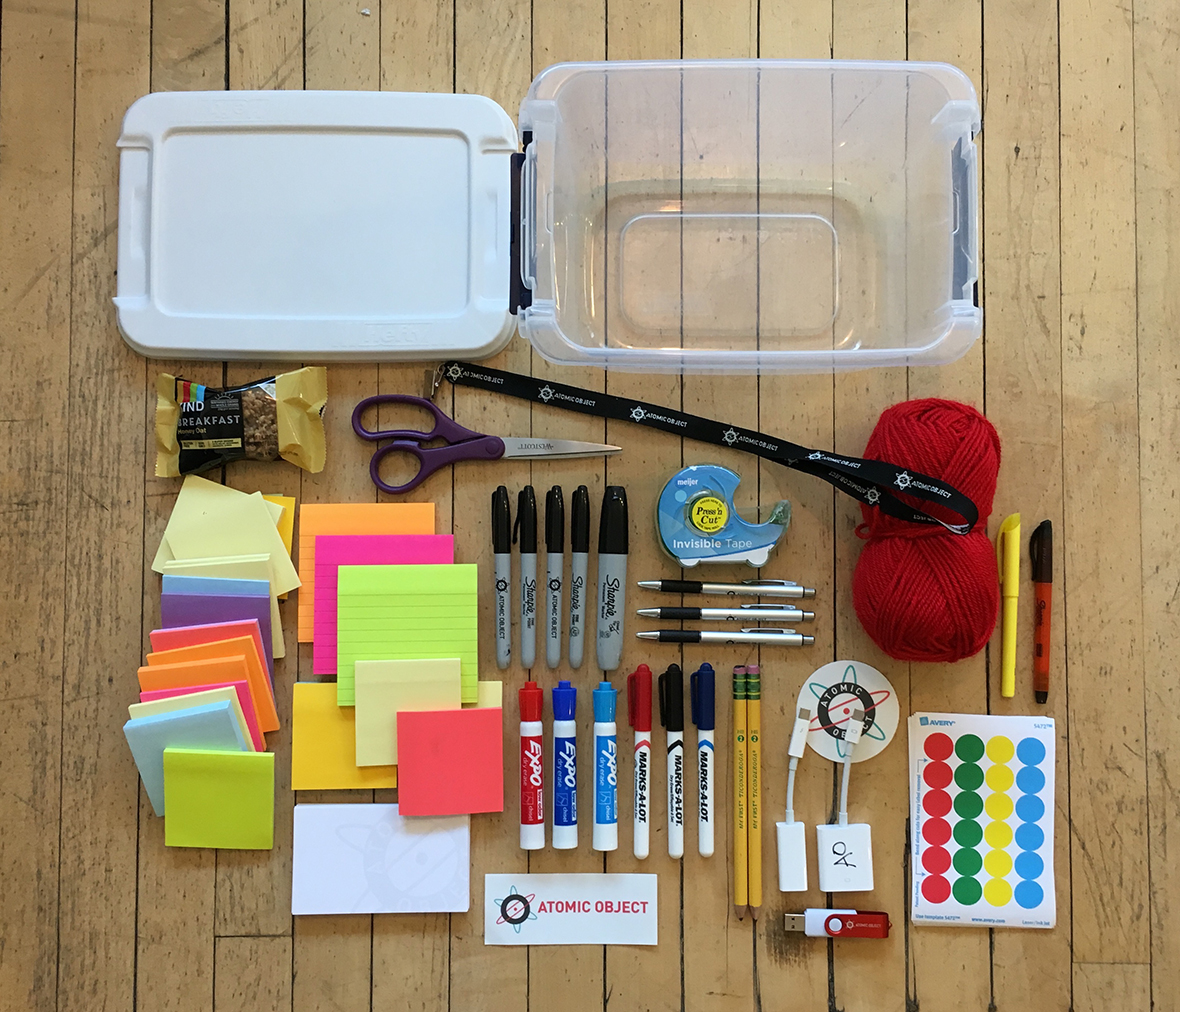 Example prototyping supplies